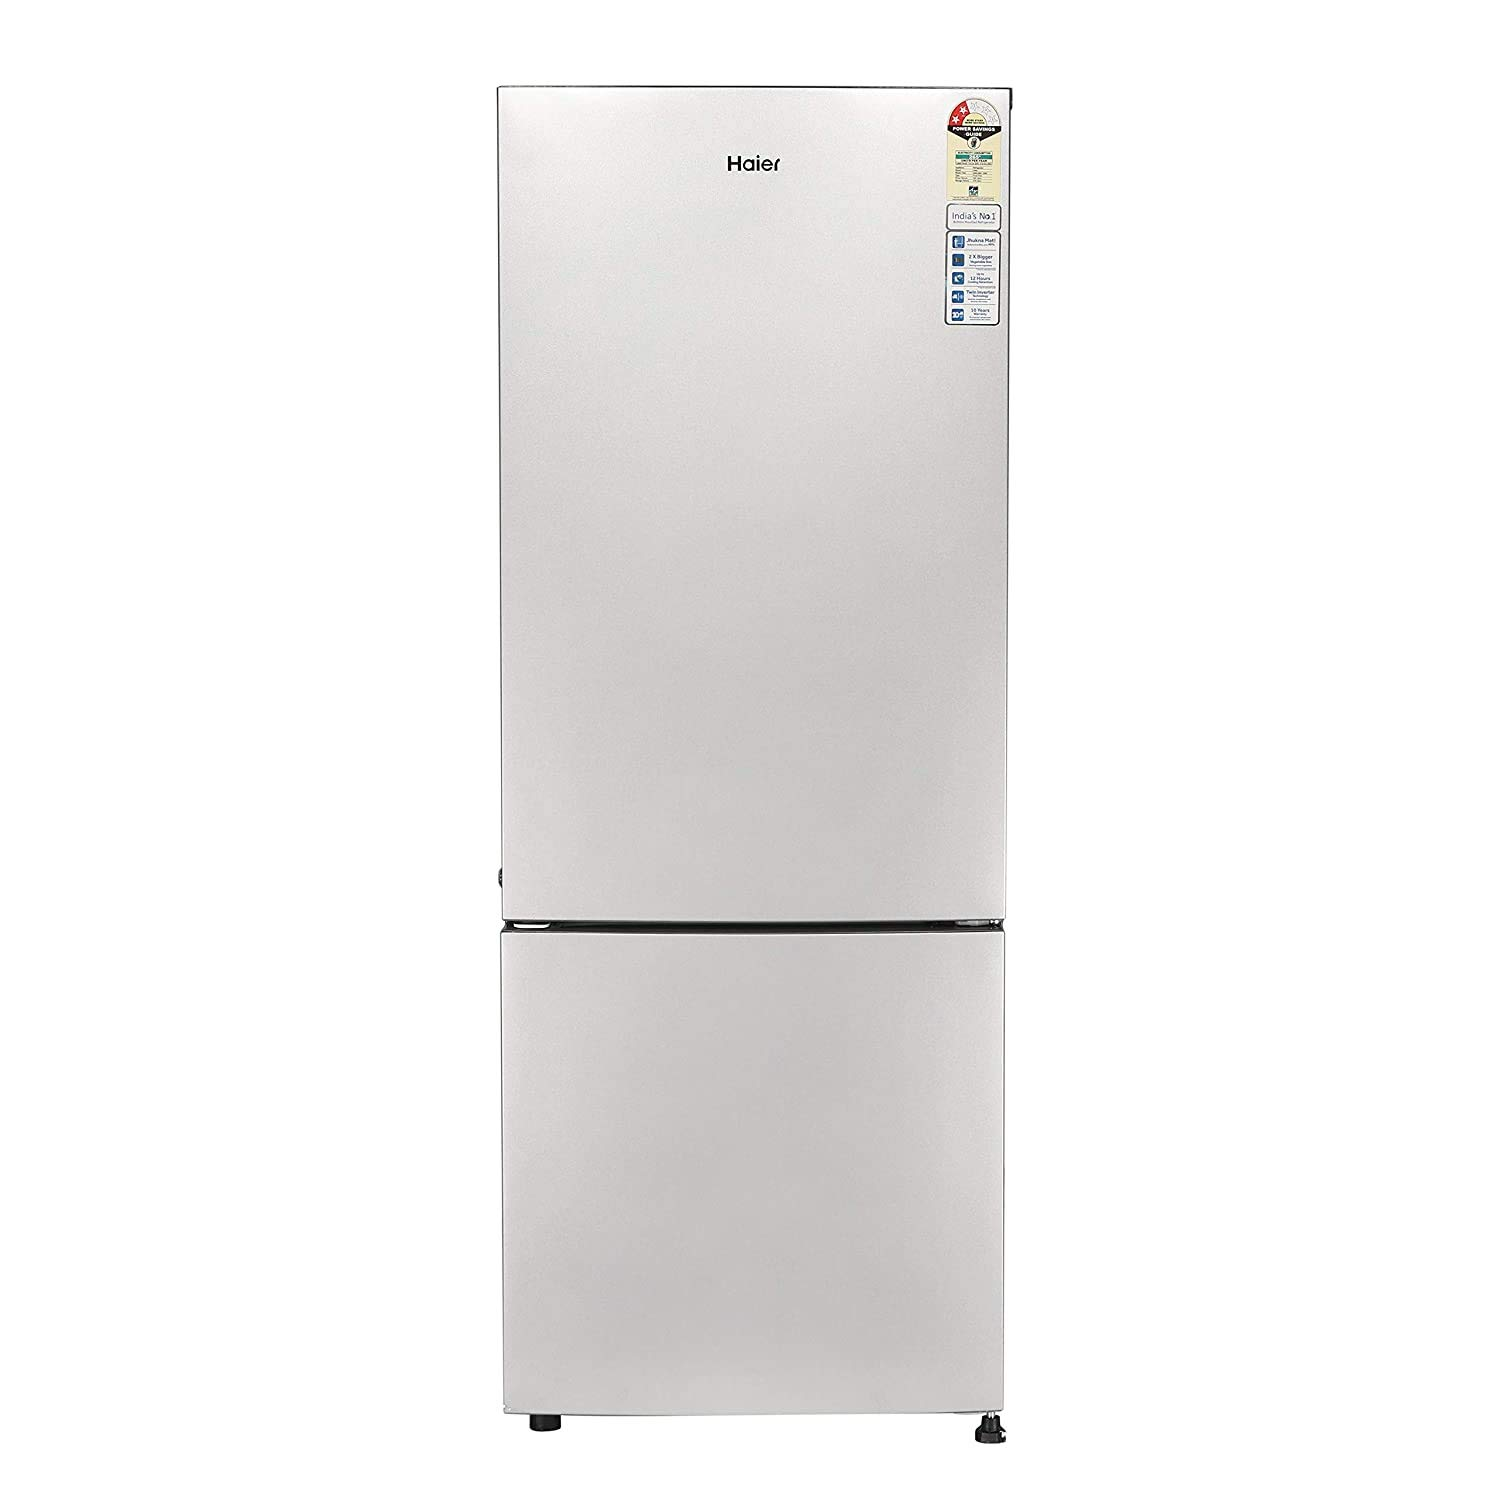 Haier 320 L 2 Star Inverter Frost-Free Double Door Refrigerator